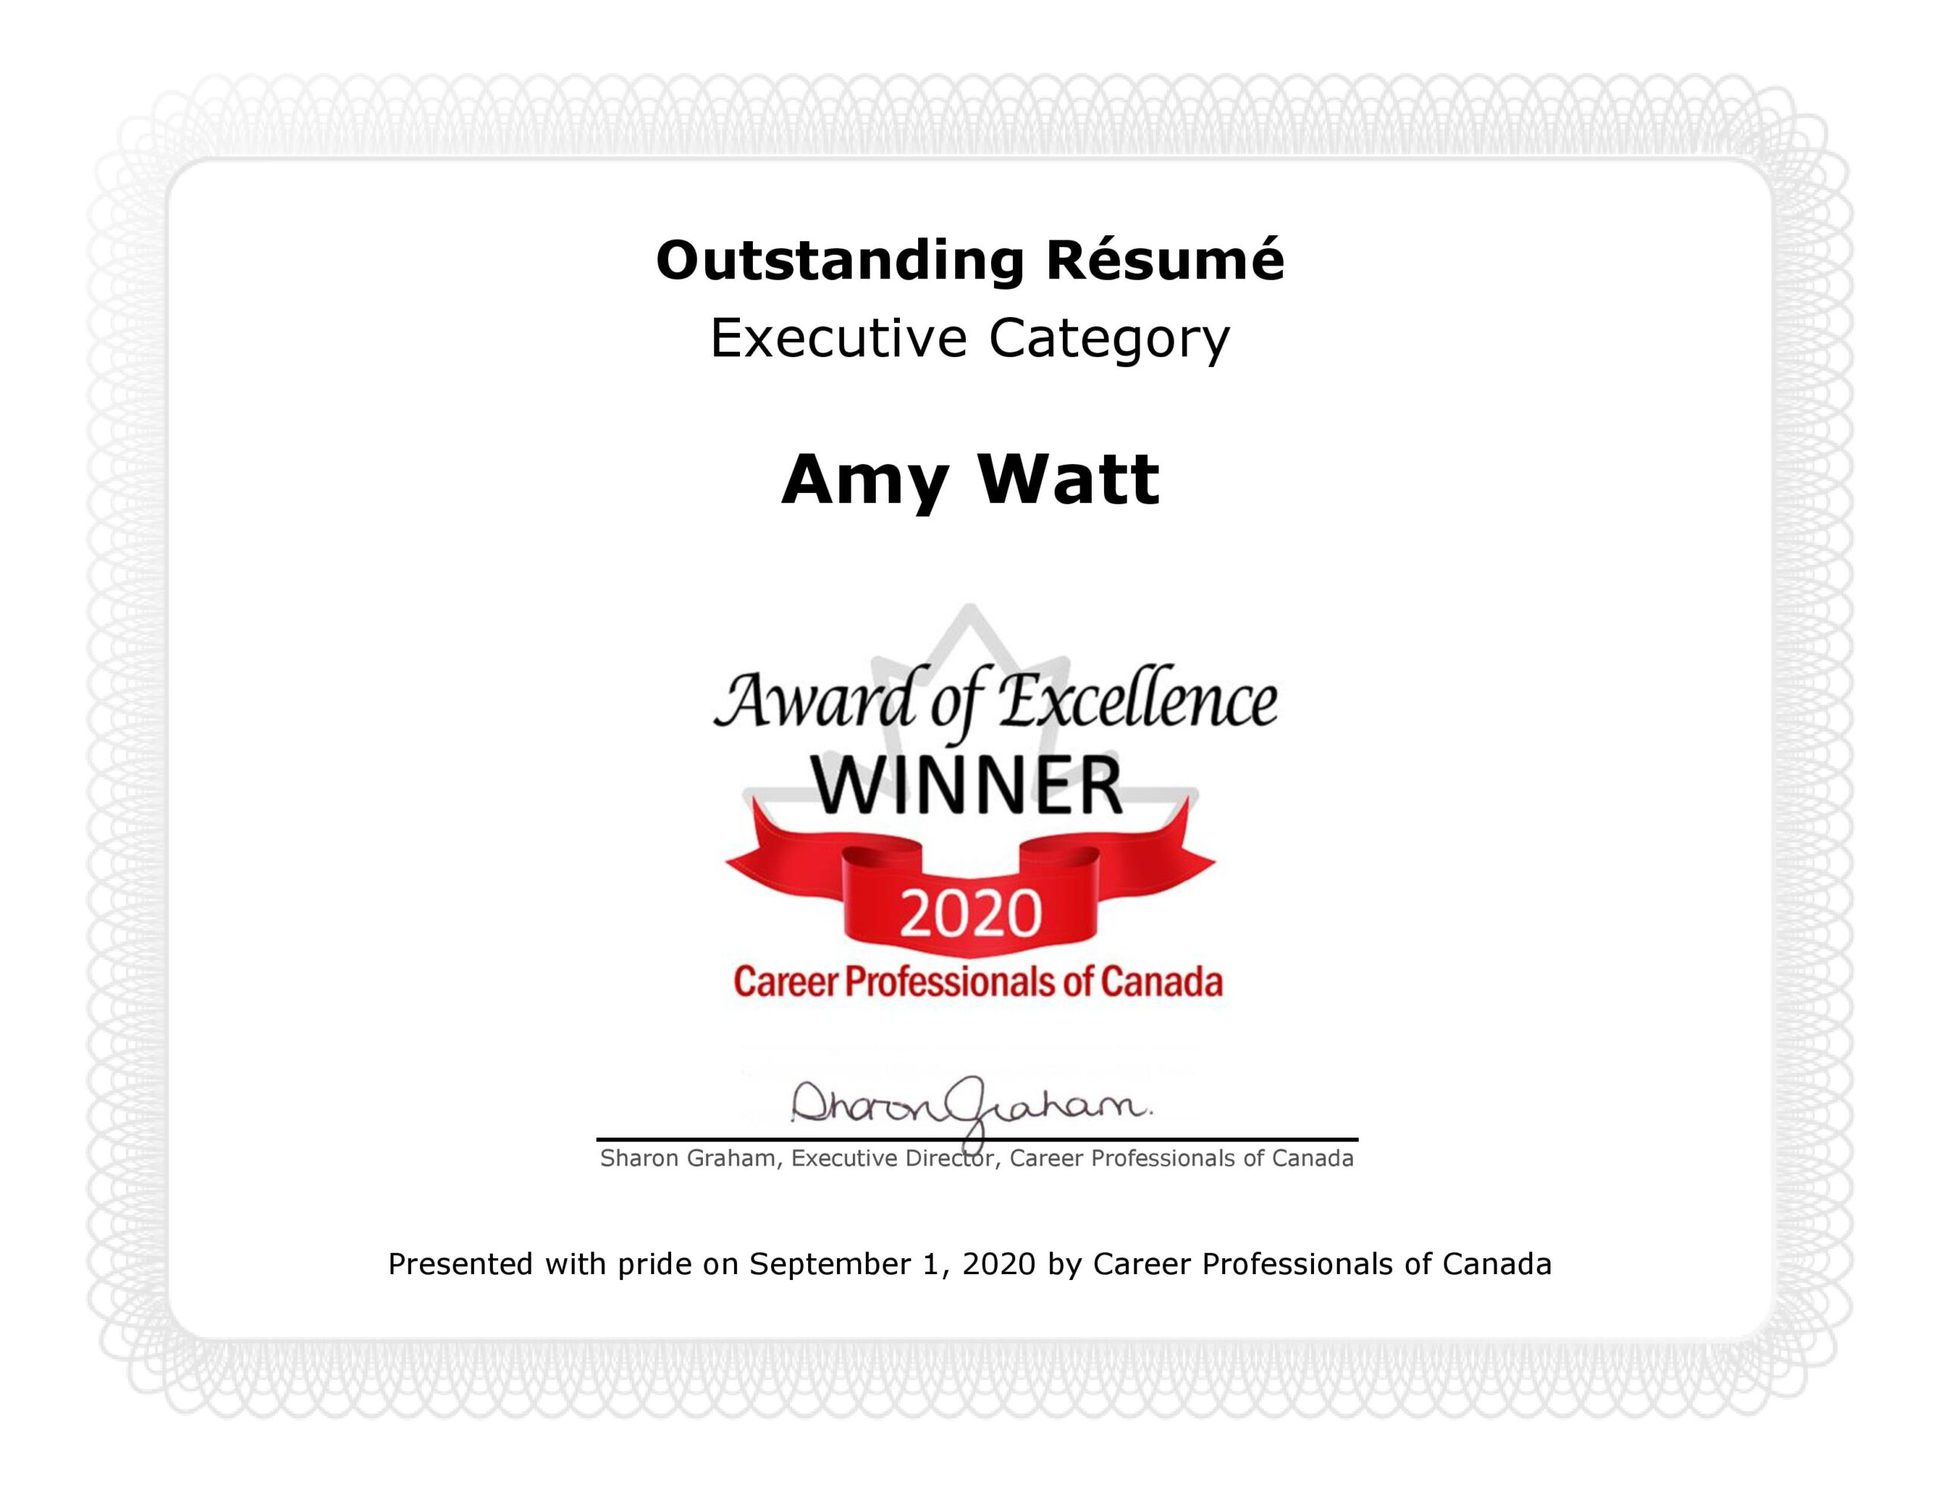 Outstanding Resume Executive Category  Award of Excellent Winner 2020 - Career Professionals of Canada